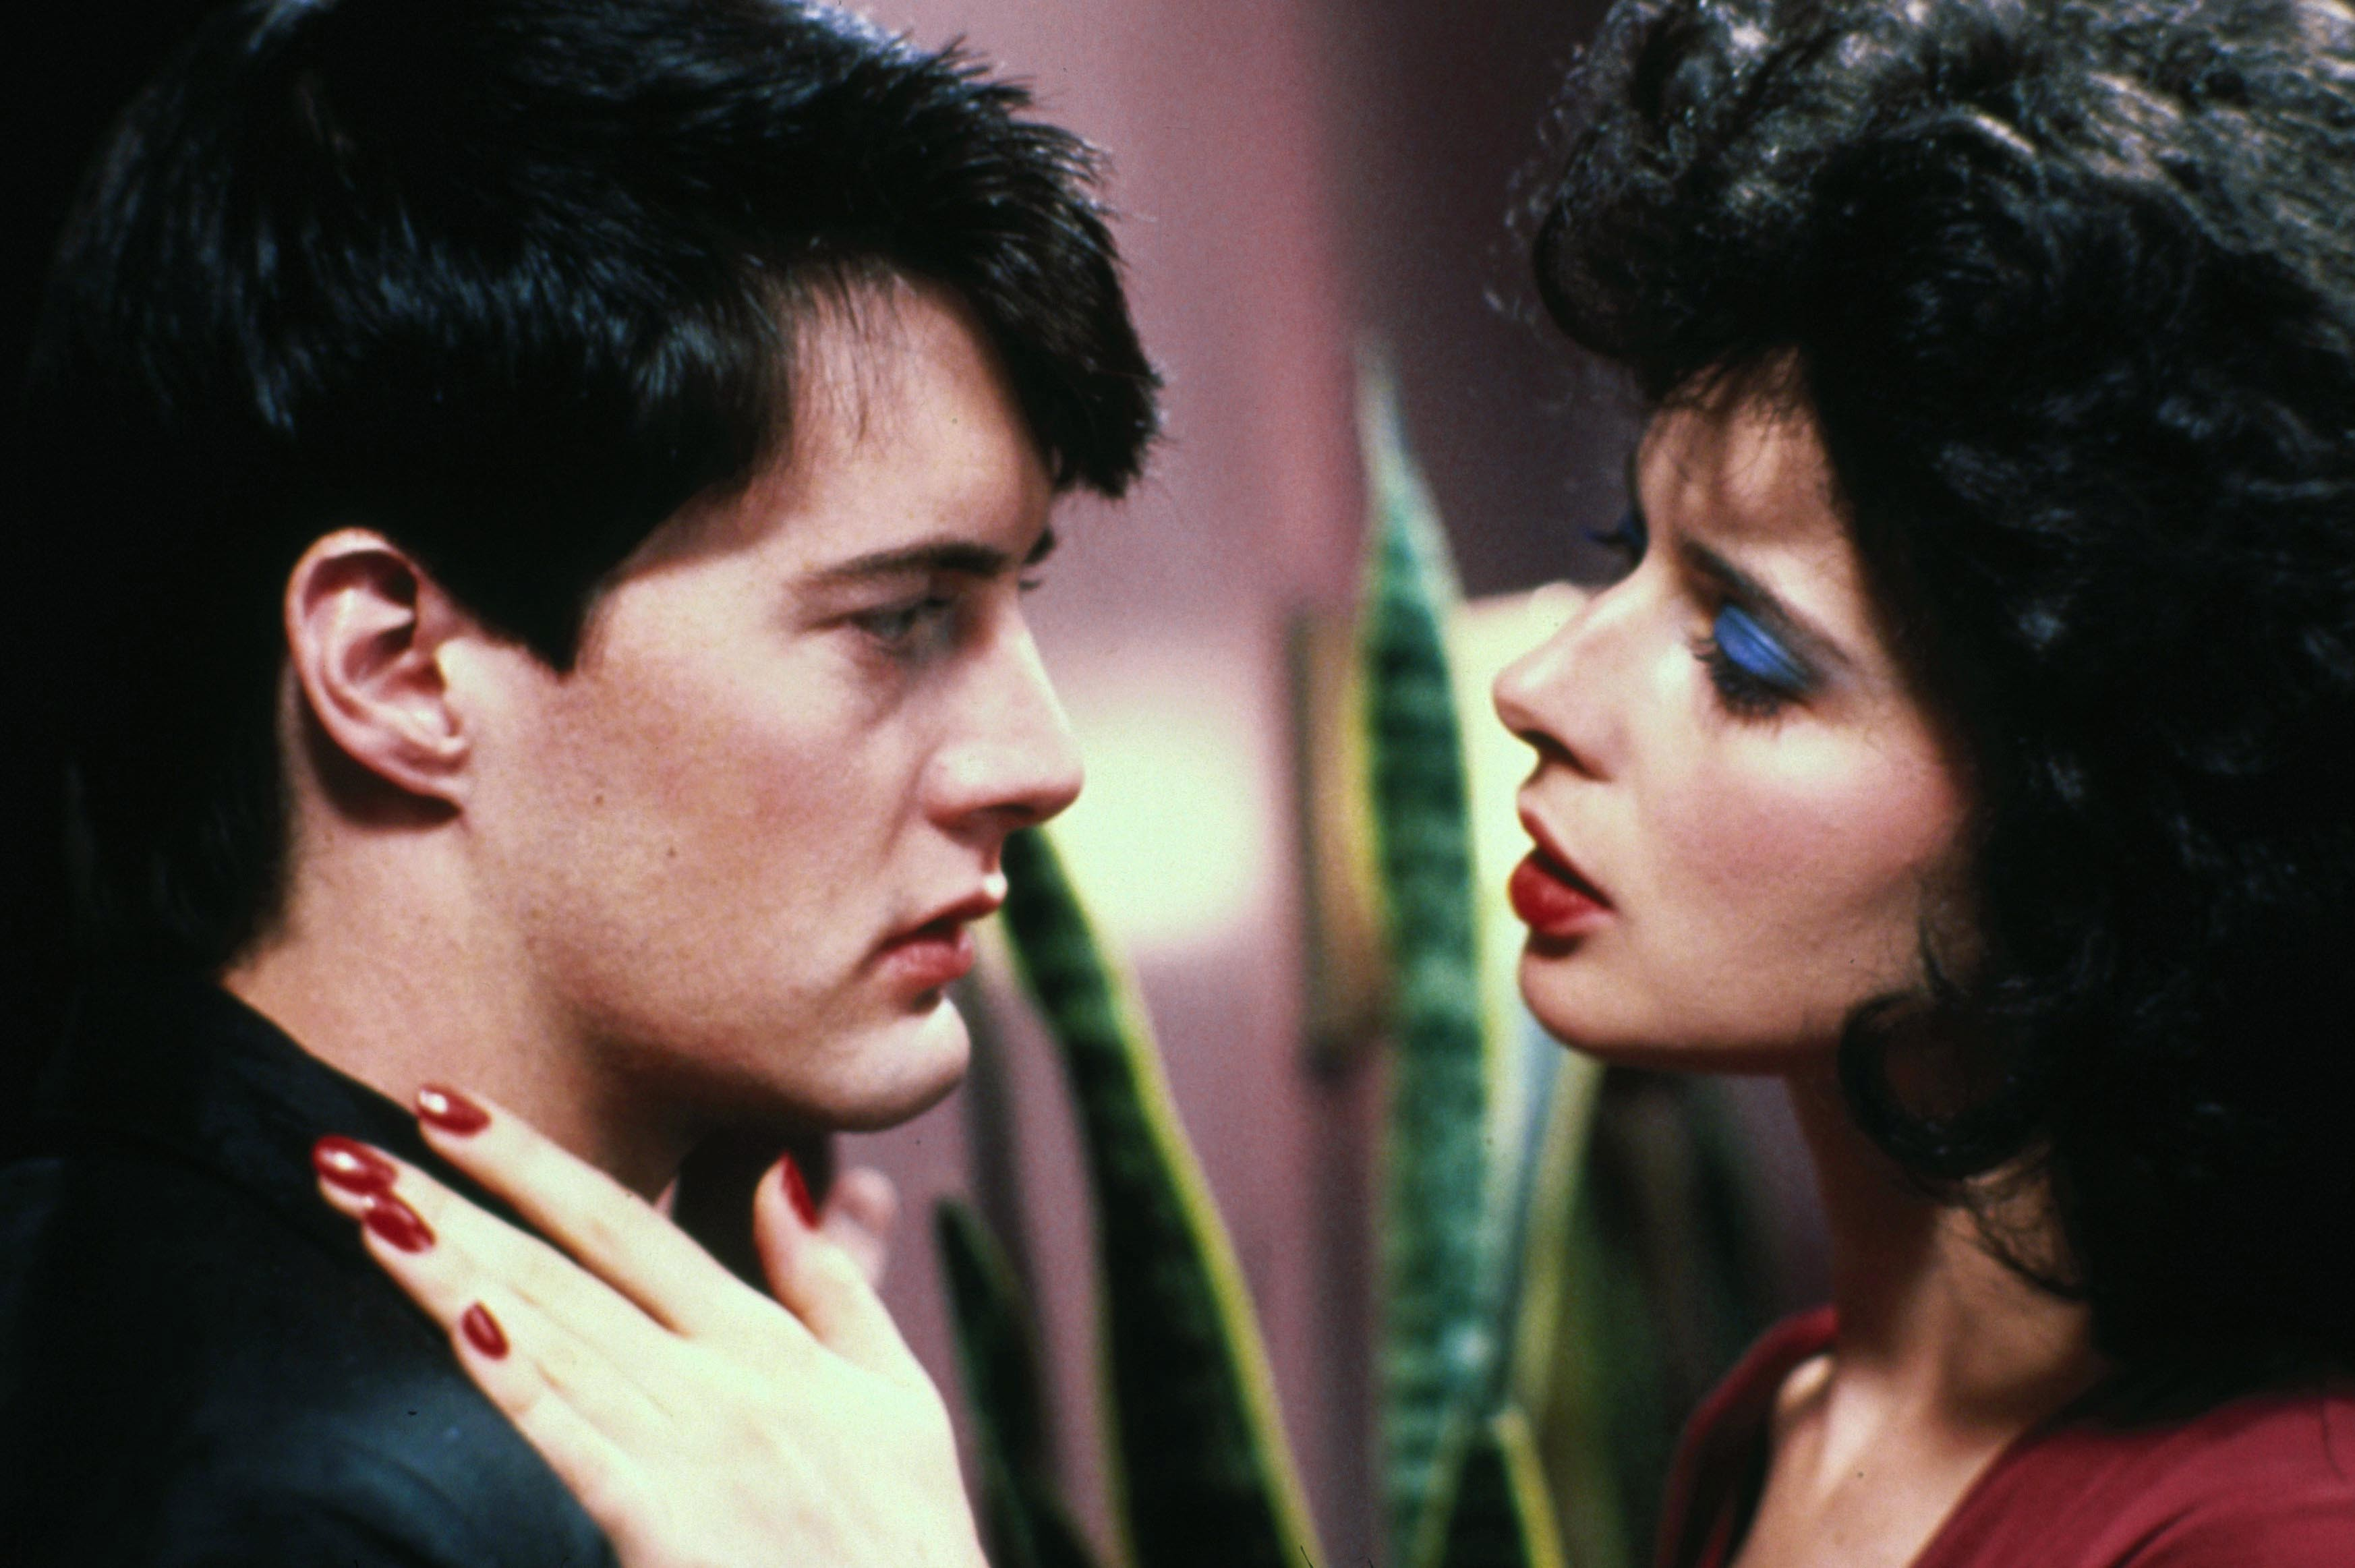 David Lynch and Criterion Releasing 51 Minutes of Lost Footage From 'Blue Velvet'